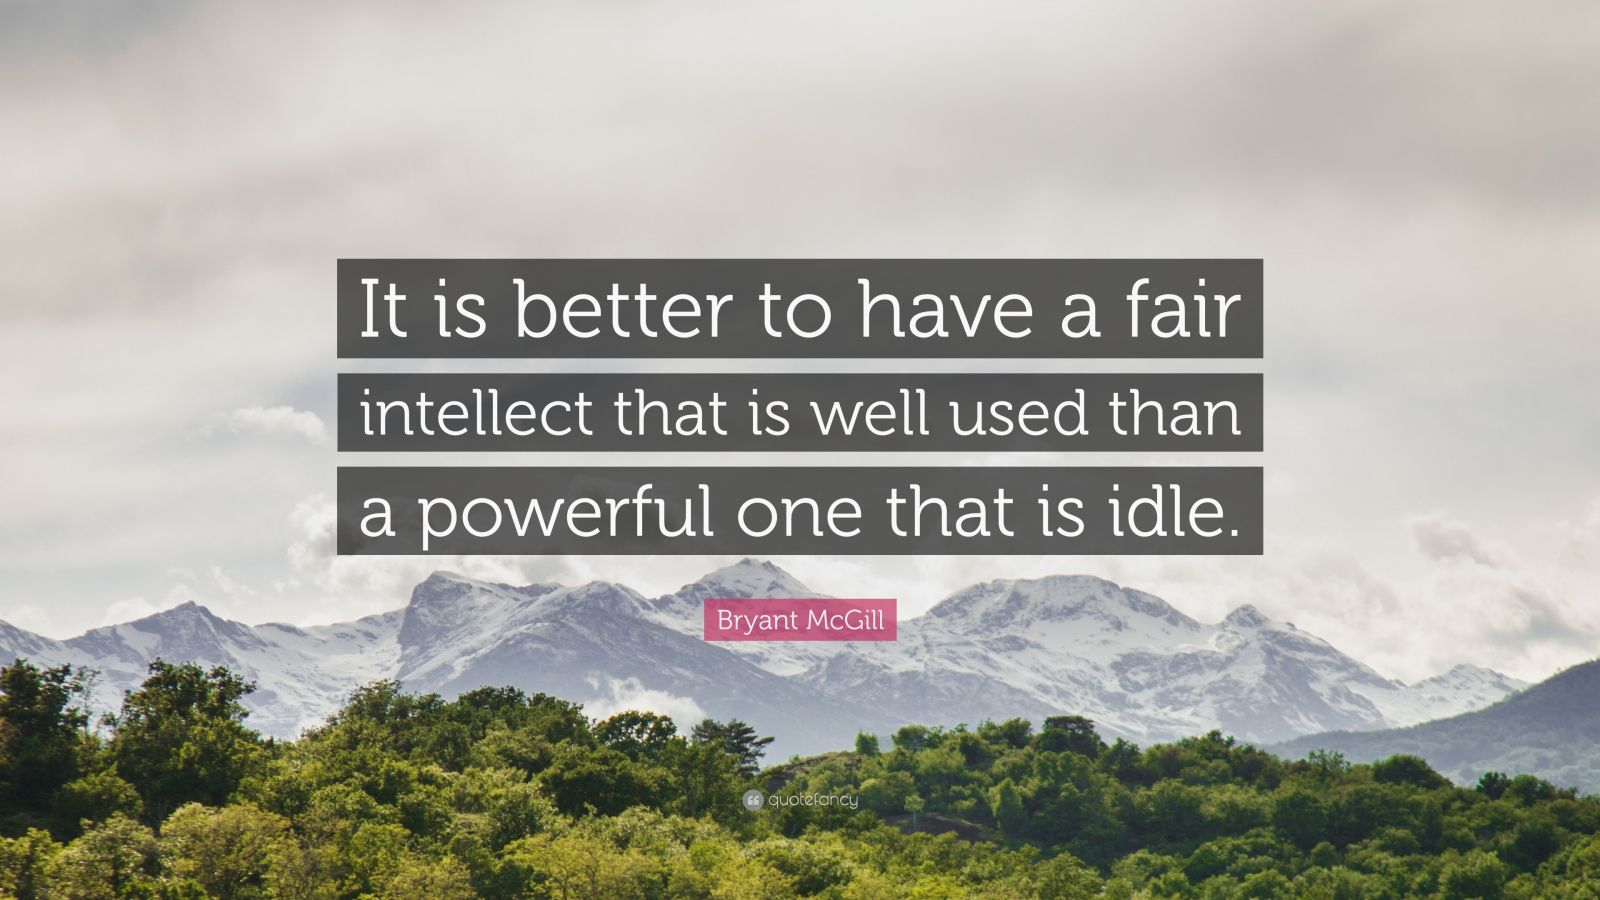 """Bryant McGill Quote: """"It is better to have a fair intellect that is well used than a powerful one that is idle."""""""